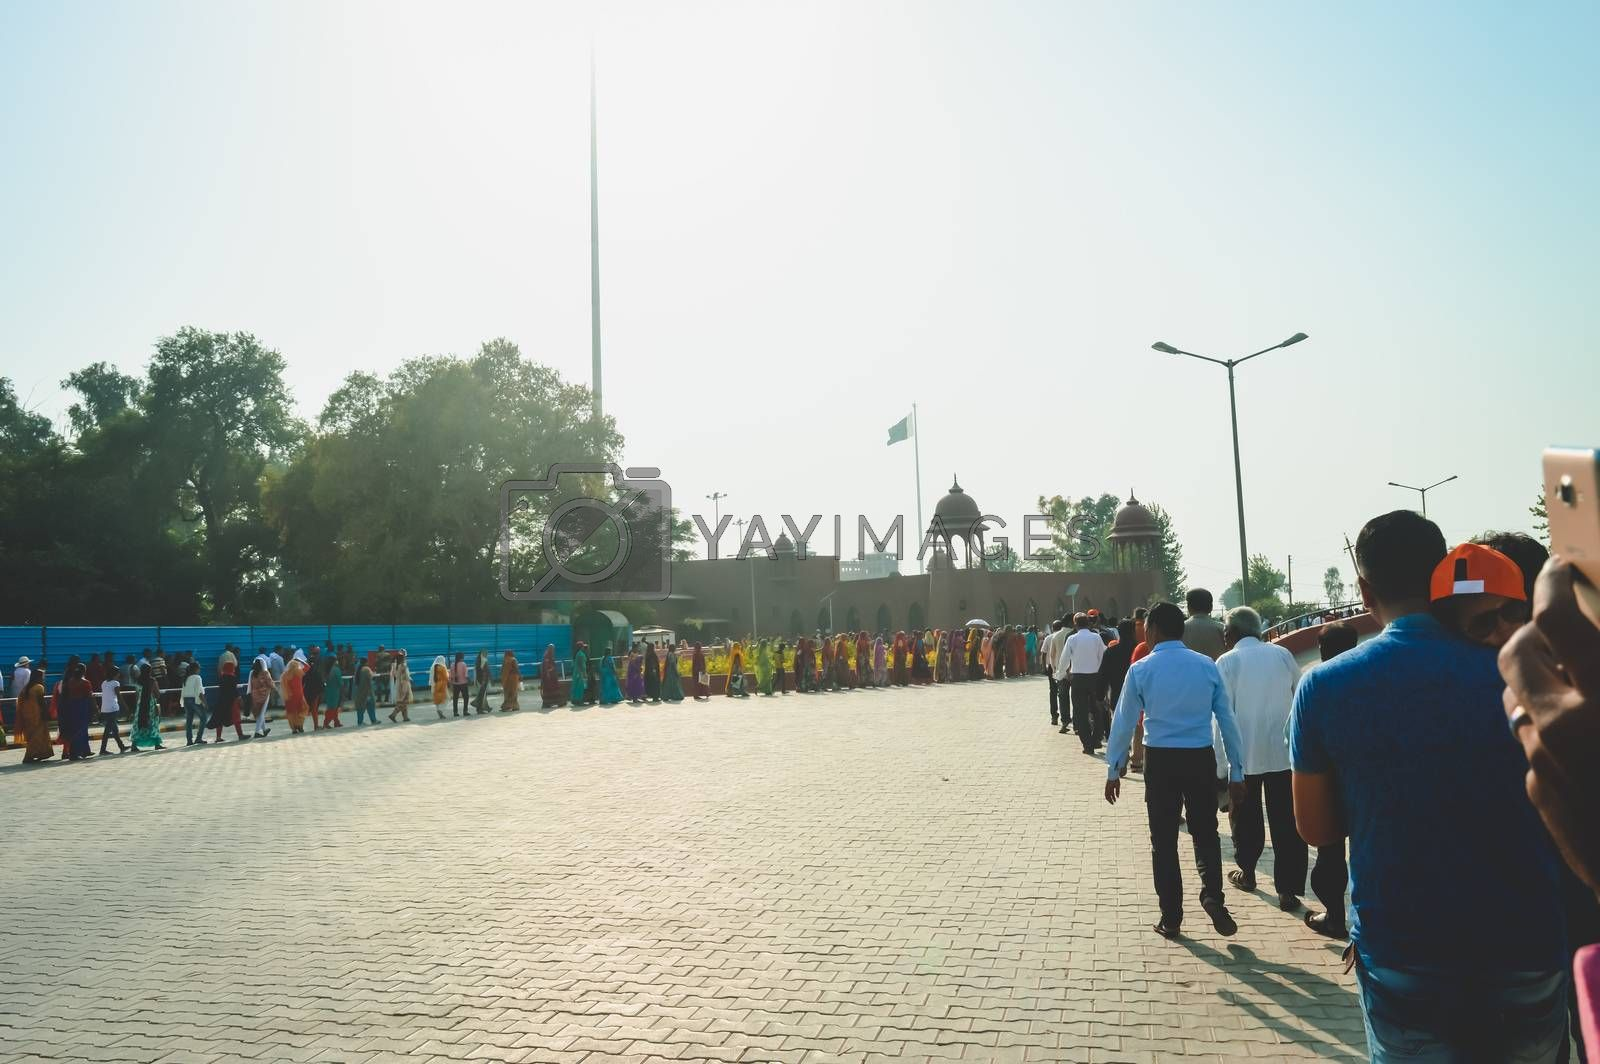 WAGHA BORDER, AMRITSAR, PUNJAB, INDIA - JUNE, 2017. People going to attend lowering of flags ceremony. Its a daily military practice security forces of India and Pakistan jointly followed since 1959.